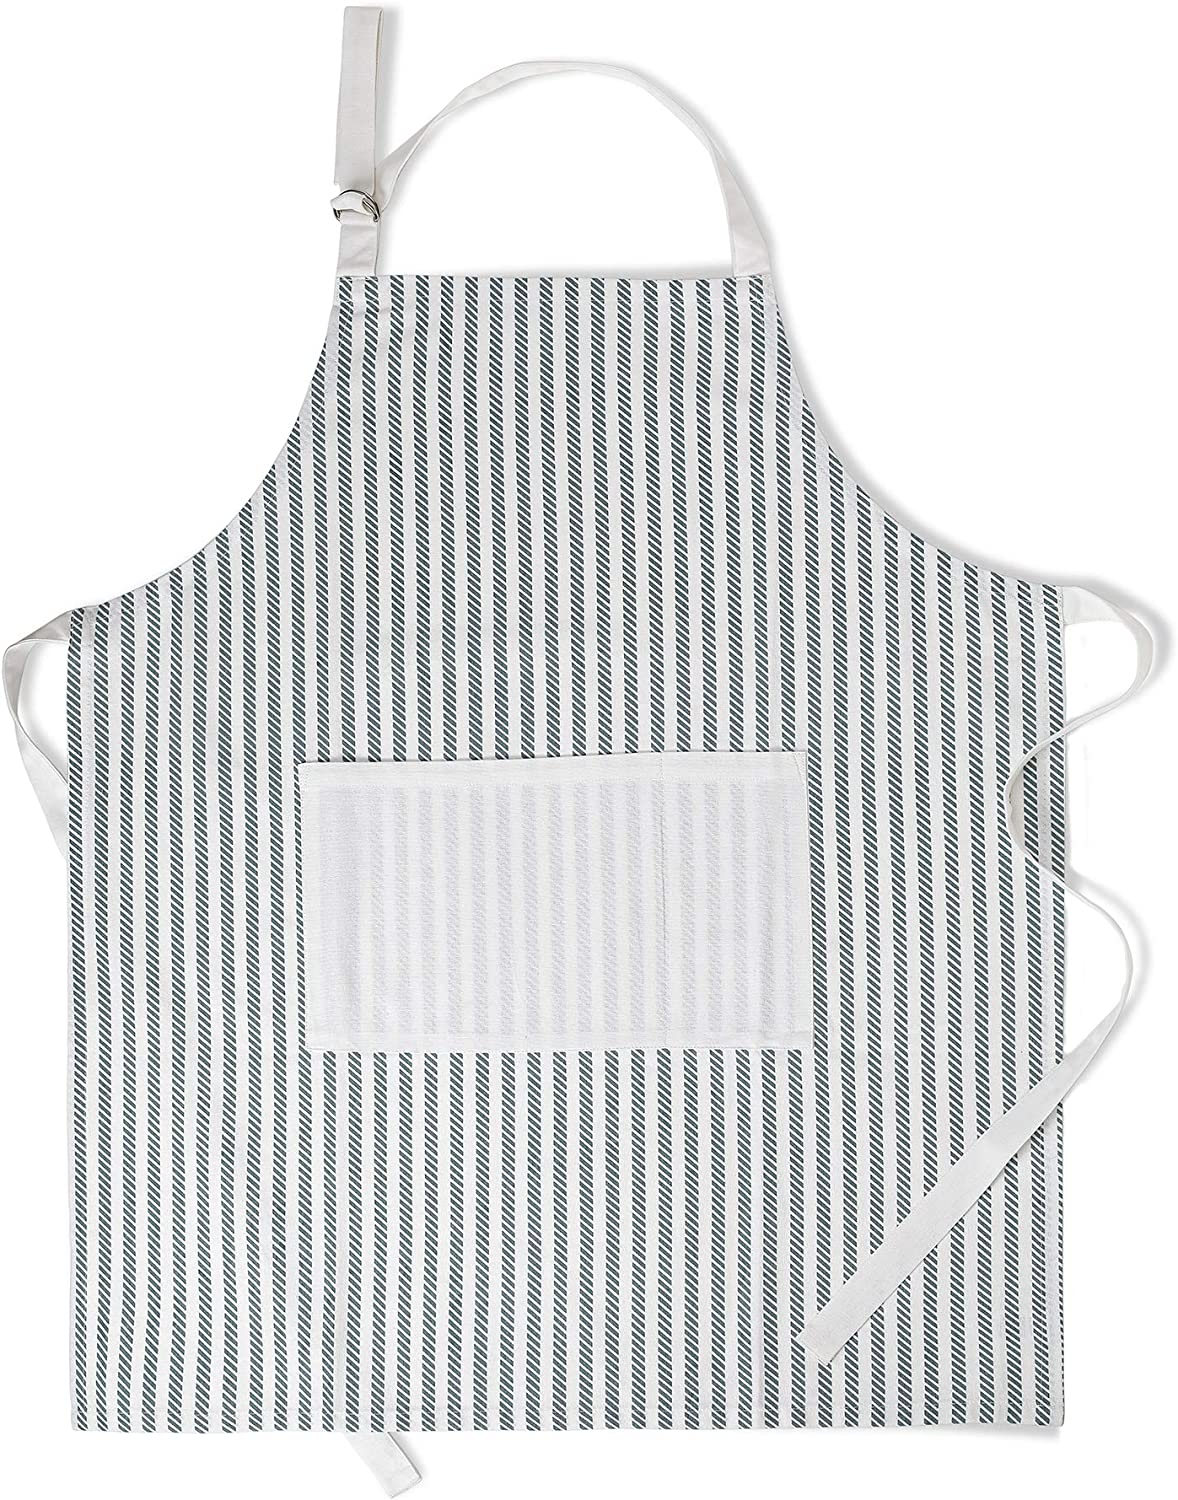 Folkulture Aprons for Women, Kitchen Apron or Chef Apron, 100% Cotton Aprons for Men with an Adjustable Neck Strap and Center Pockets for Cooking or Baking, 27.5